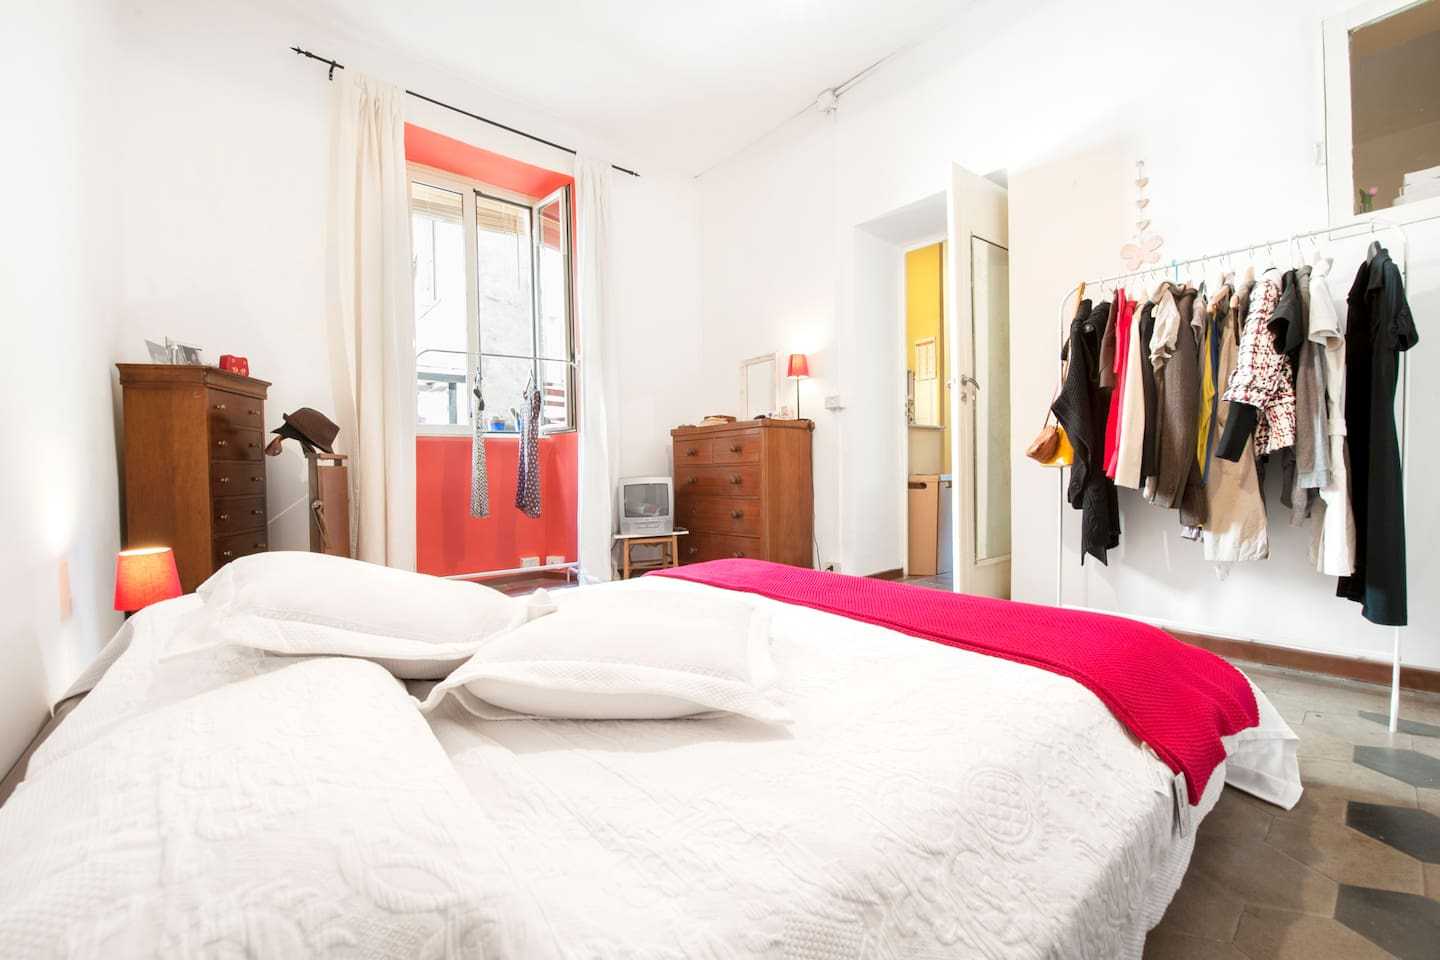 This is the main bedroom. The bed is a double size bed and very confortable.